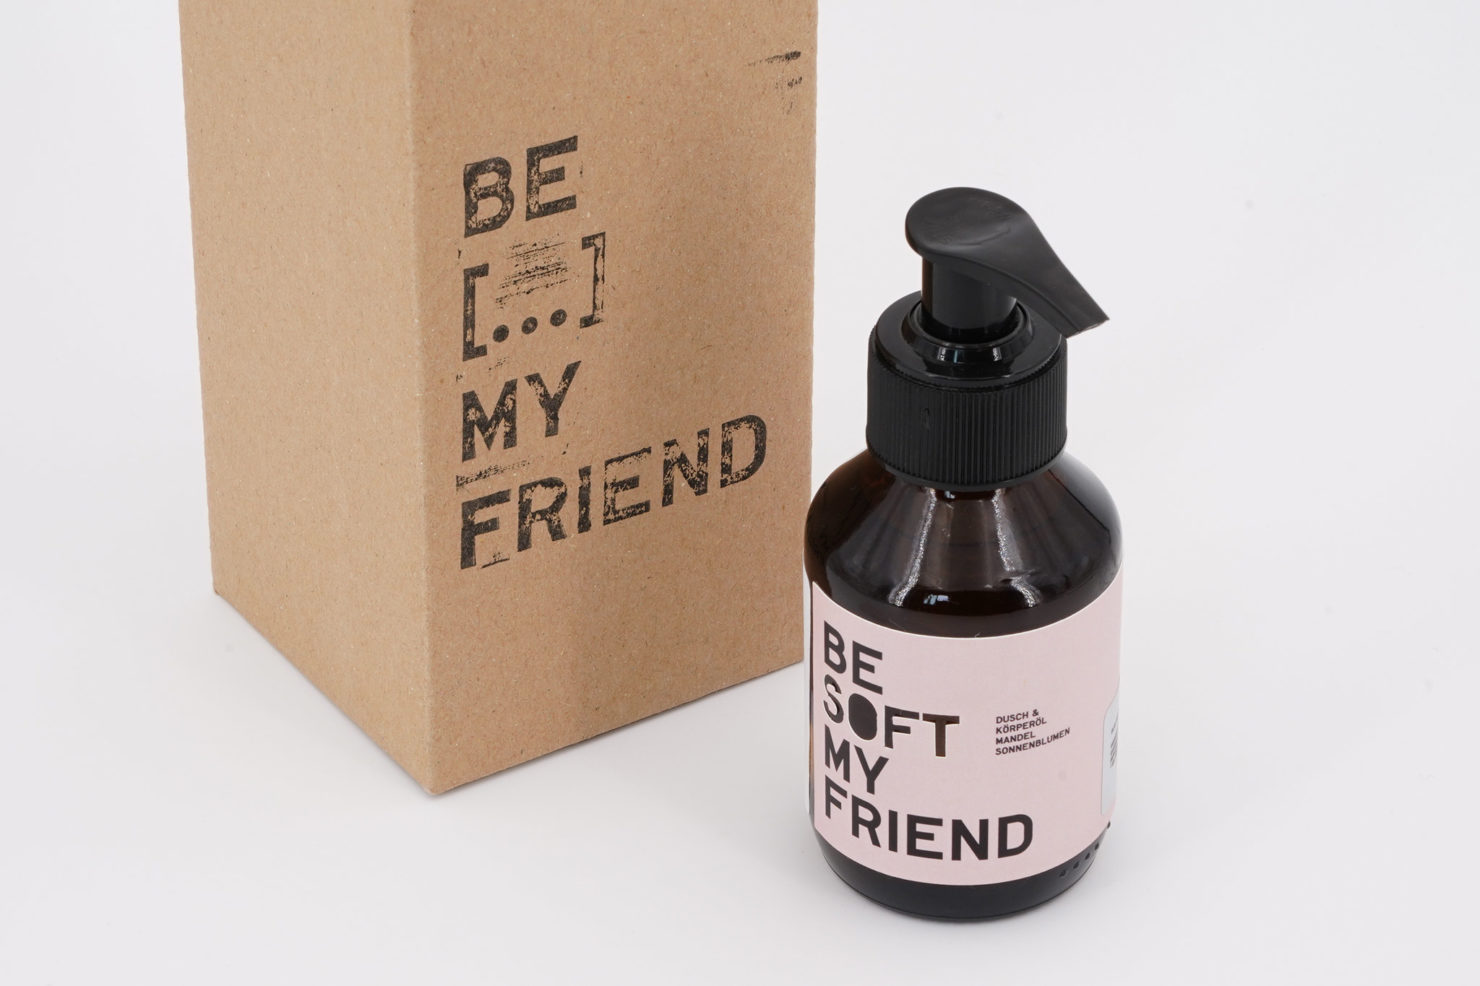 BE SOFT MY FRIEND OIL 100ML BE MY FRIEND